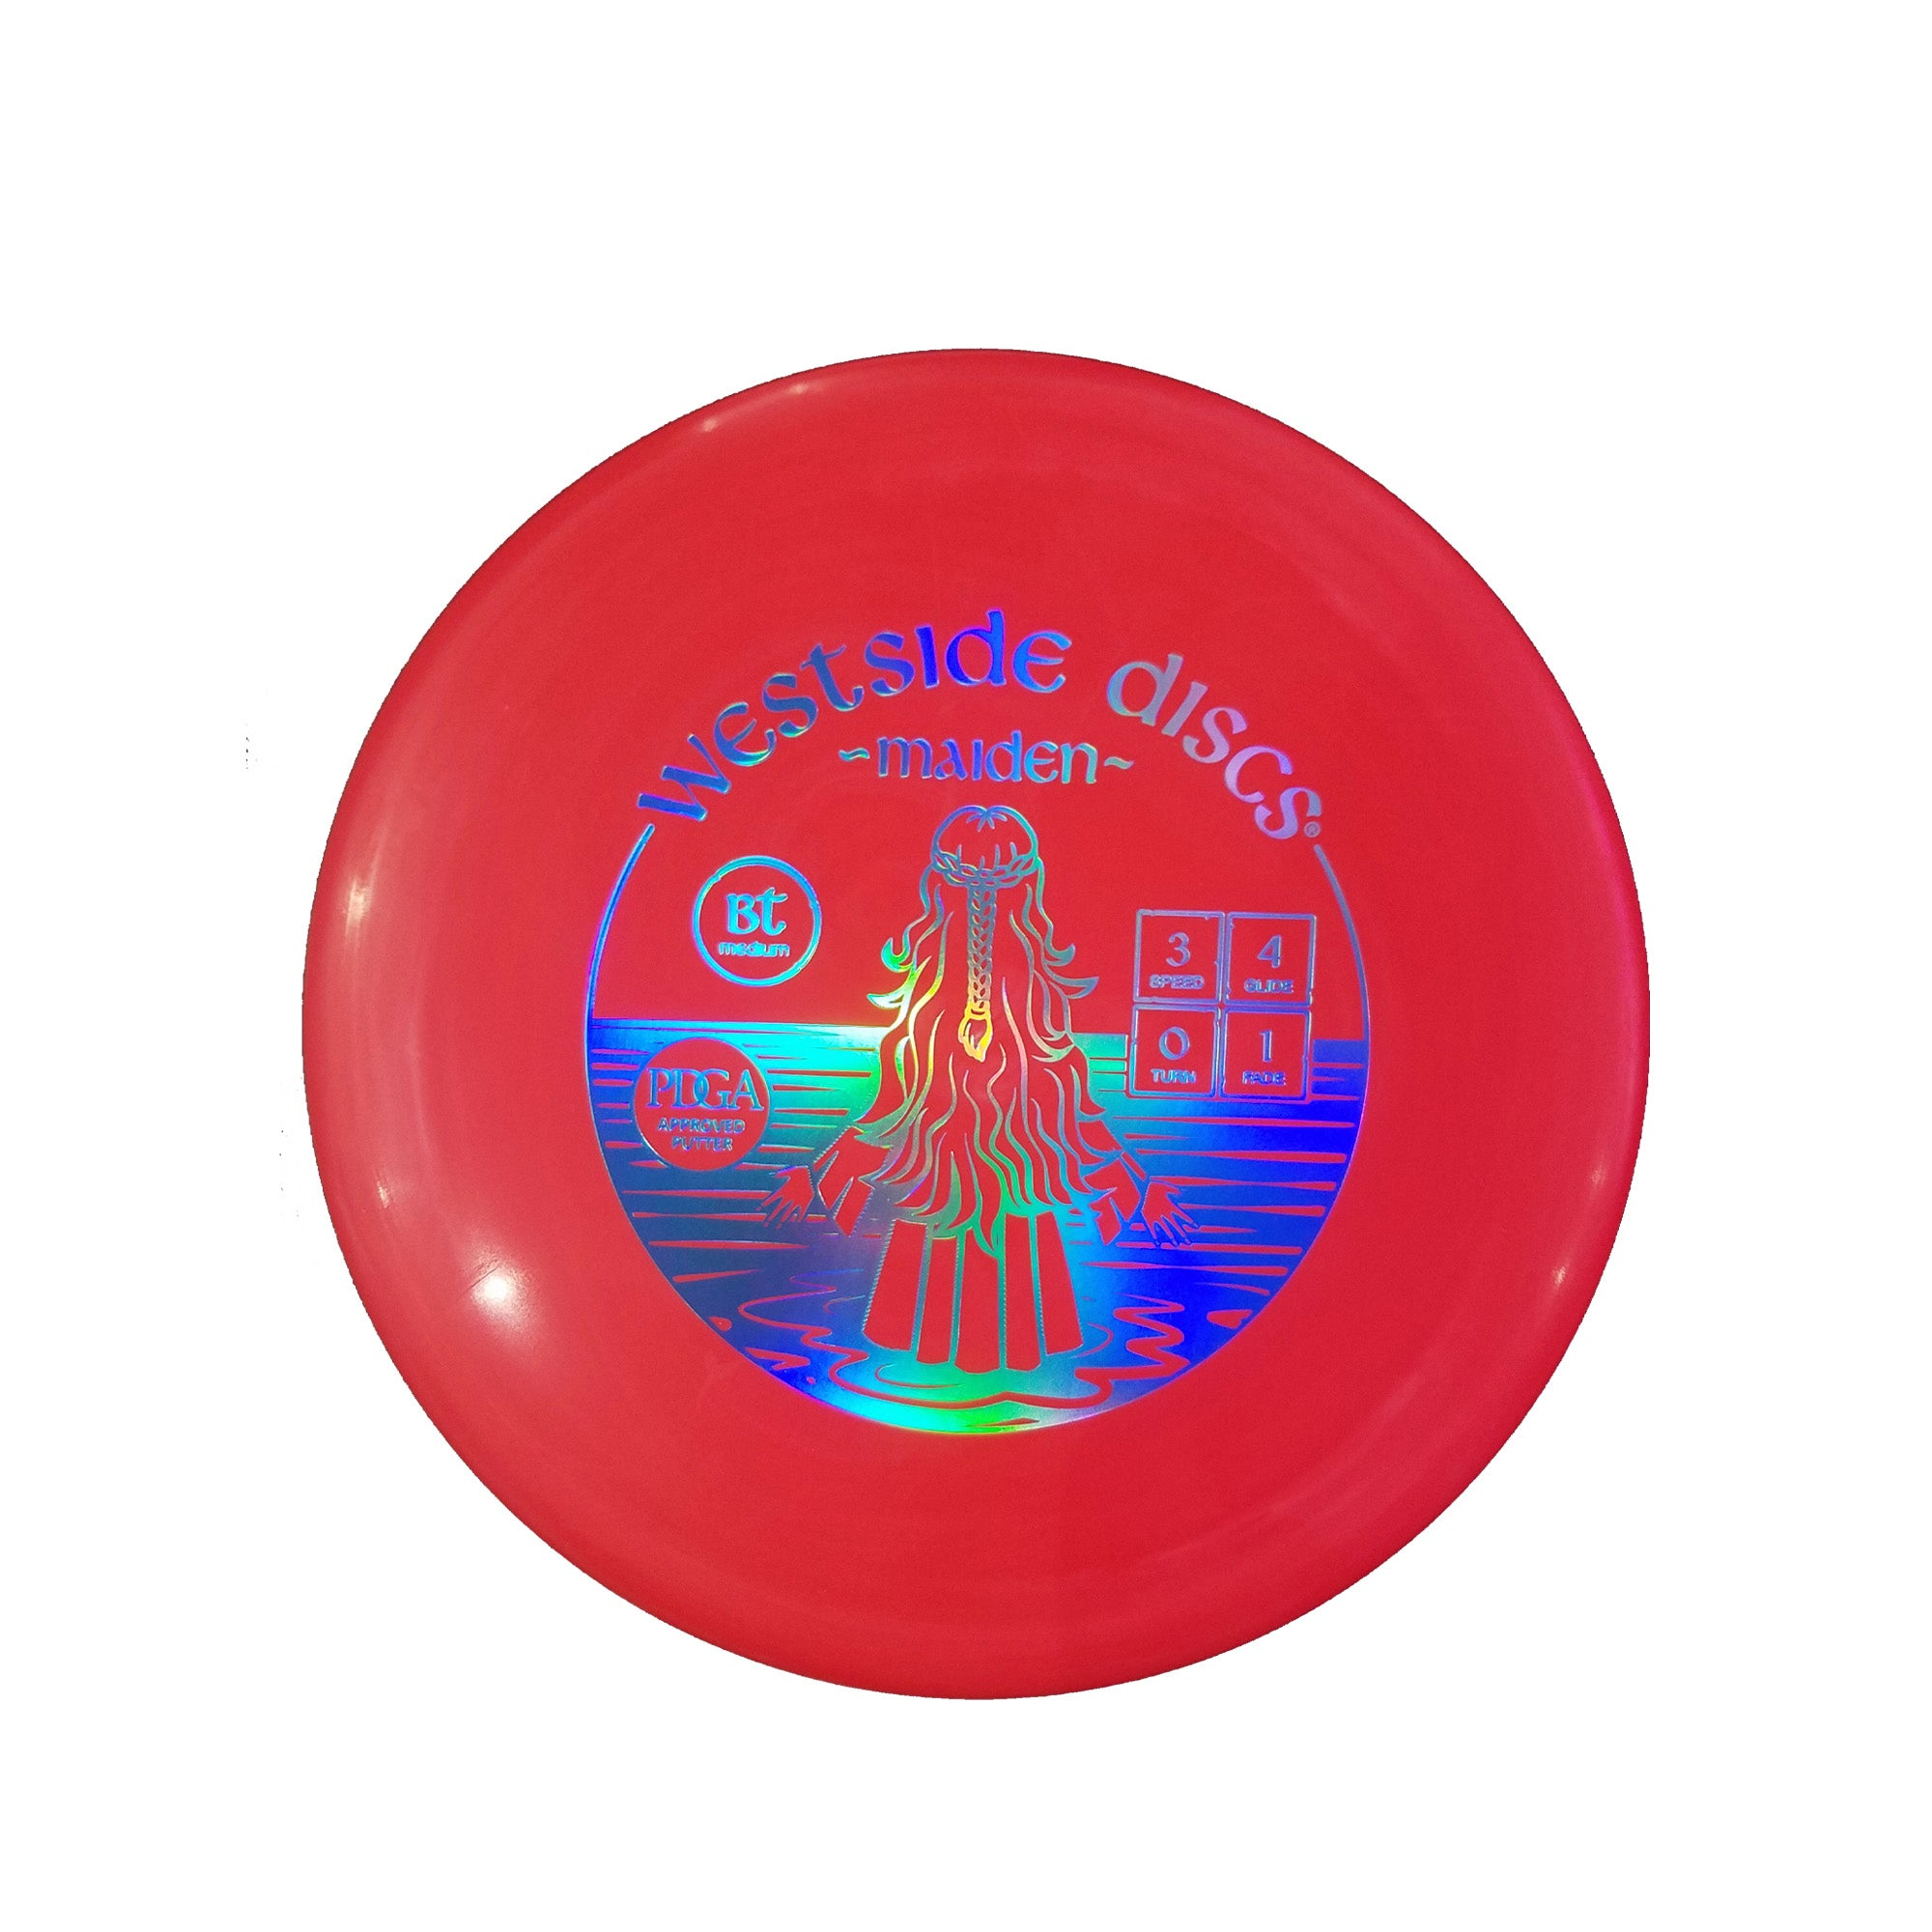 Westside Discs BT Medium Maiden Putter Disc - 173g